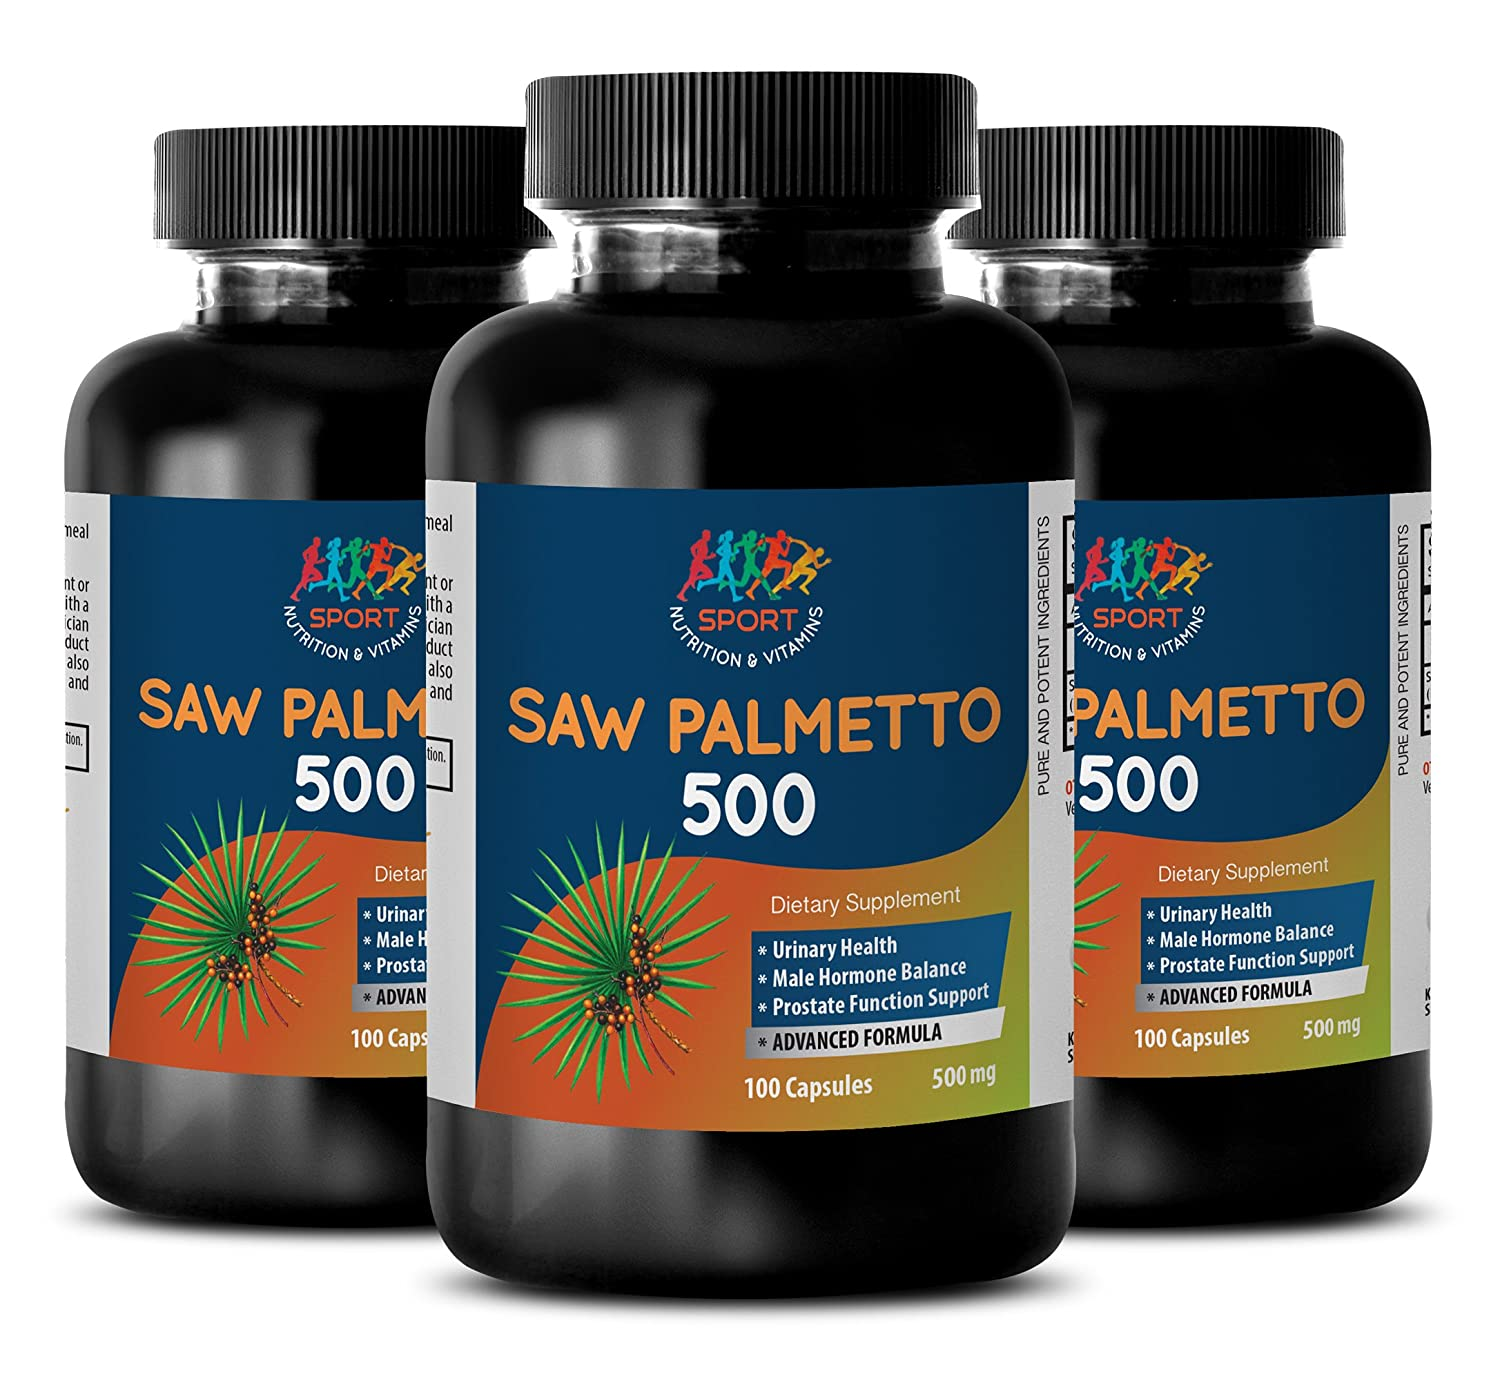 Amazon.com  men prostate vitamin - SAW PALMETTO 500MG - saw palmetto best  seller - 3 Bottles 300 Capsules  Health   Personal Care c3873dcc6778